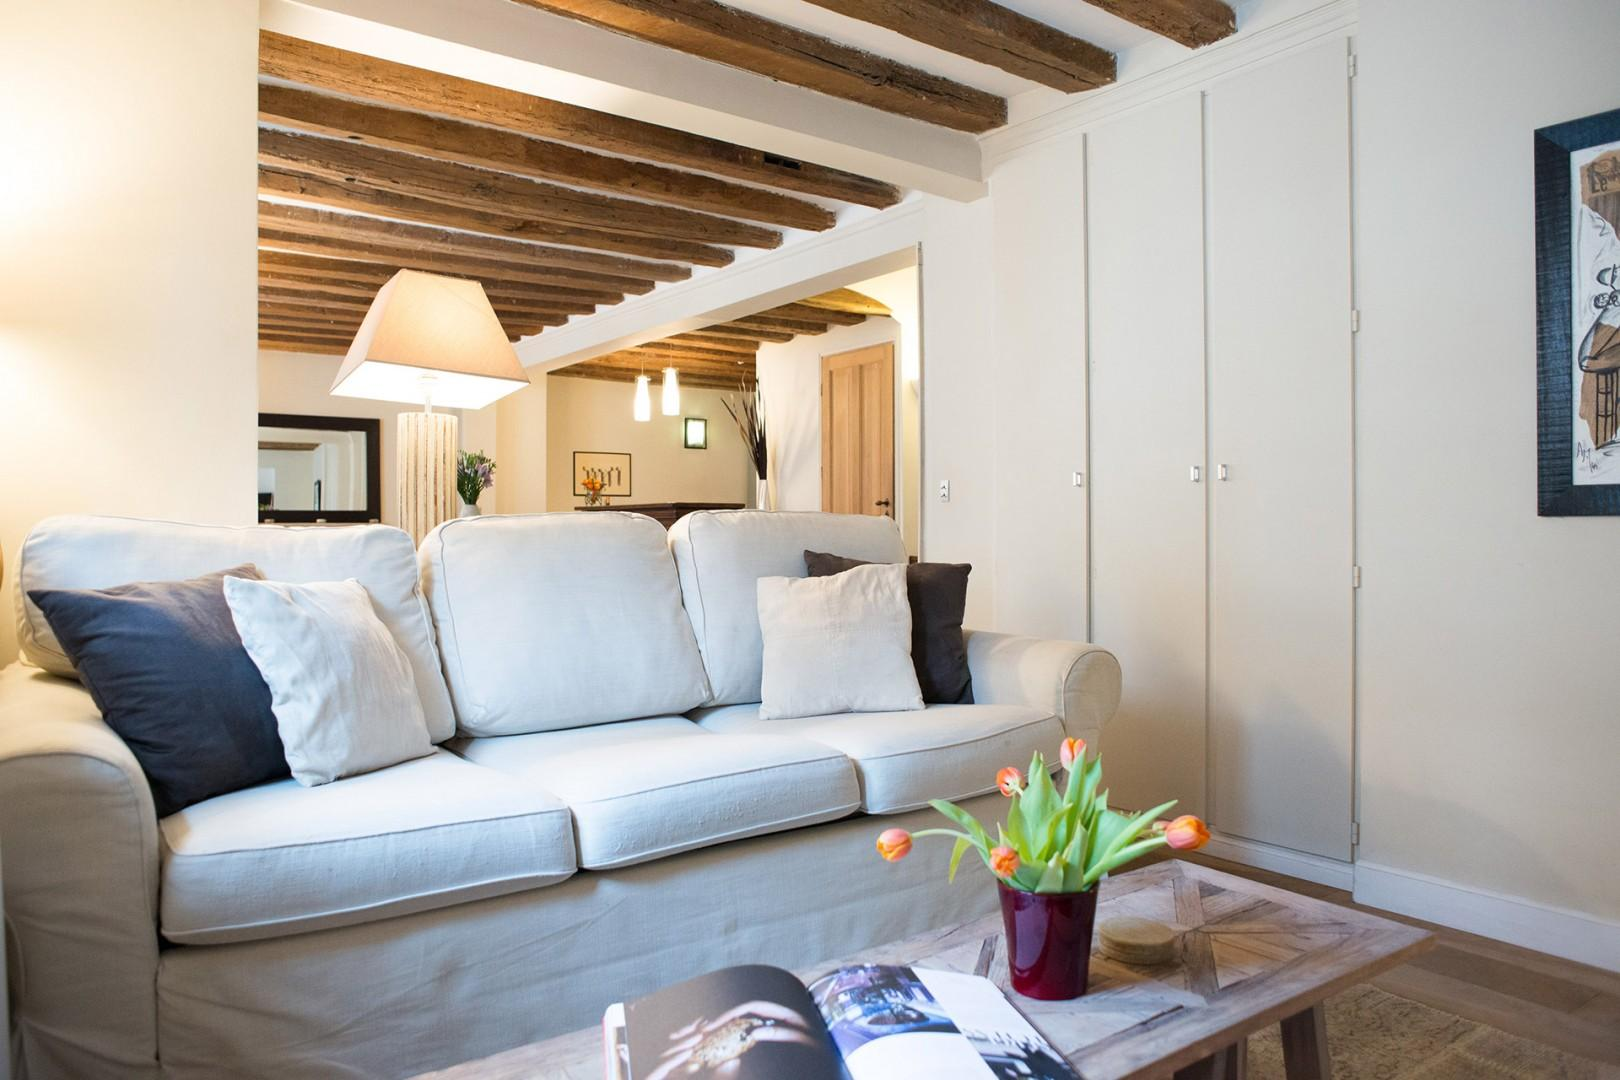 Warm and inviting, the apartment exudes a French countryside vibe.